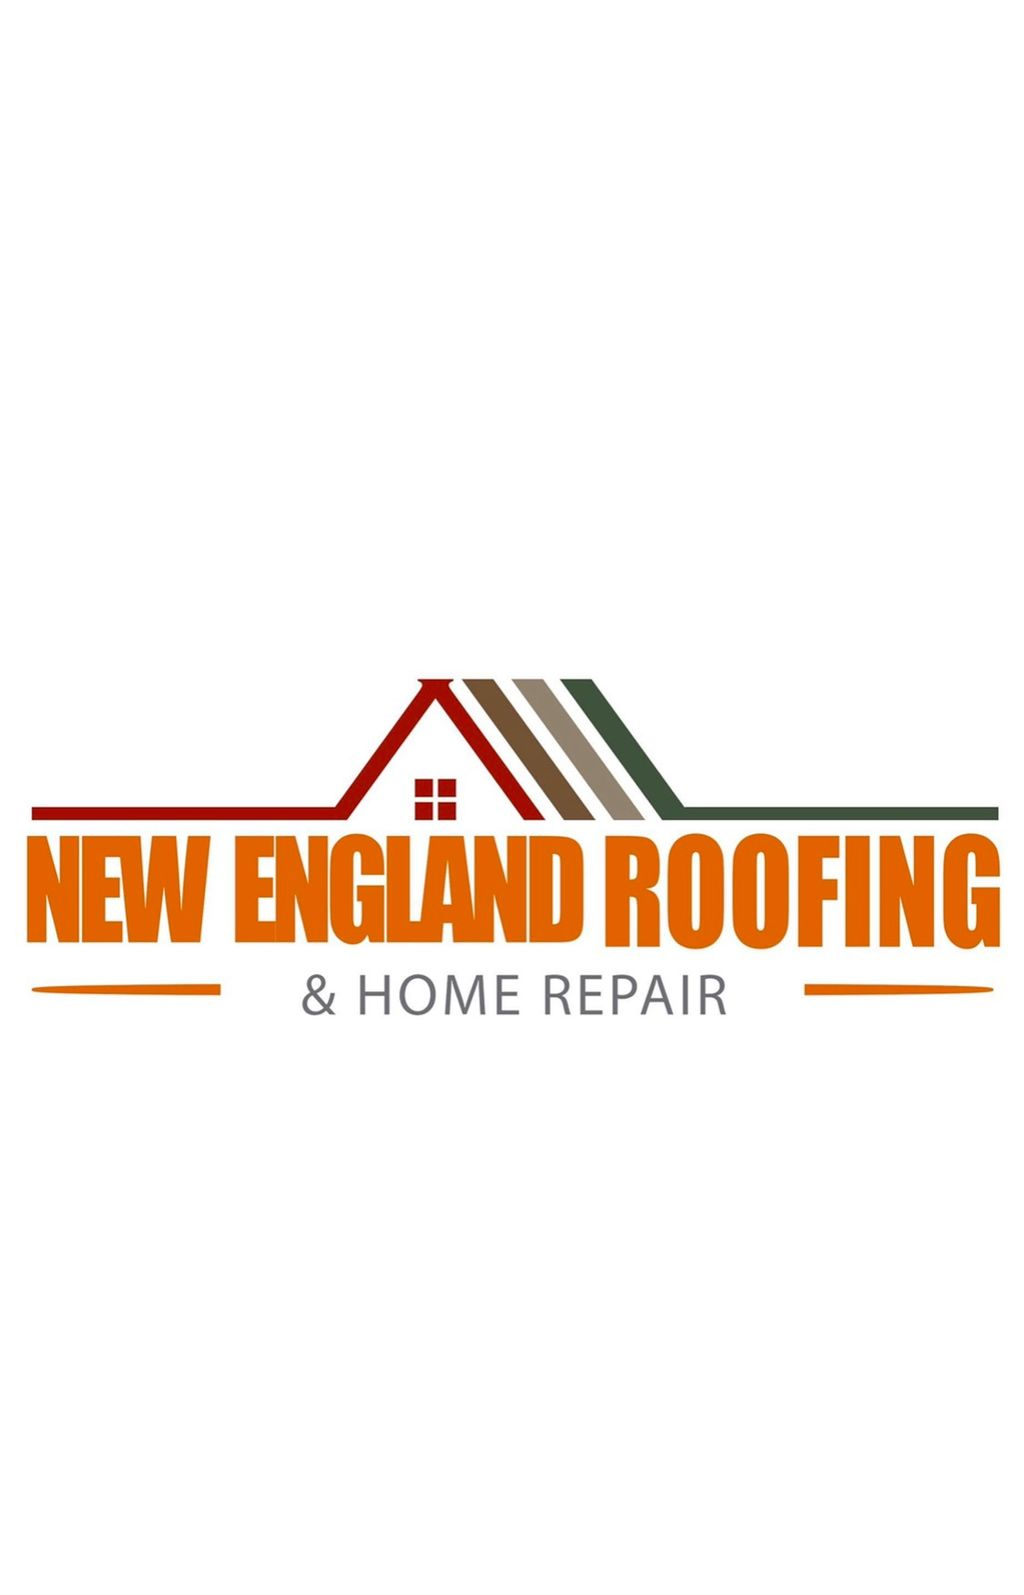 New England Roofing & Home Repair